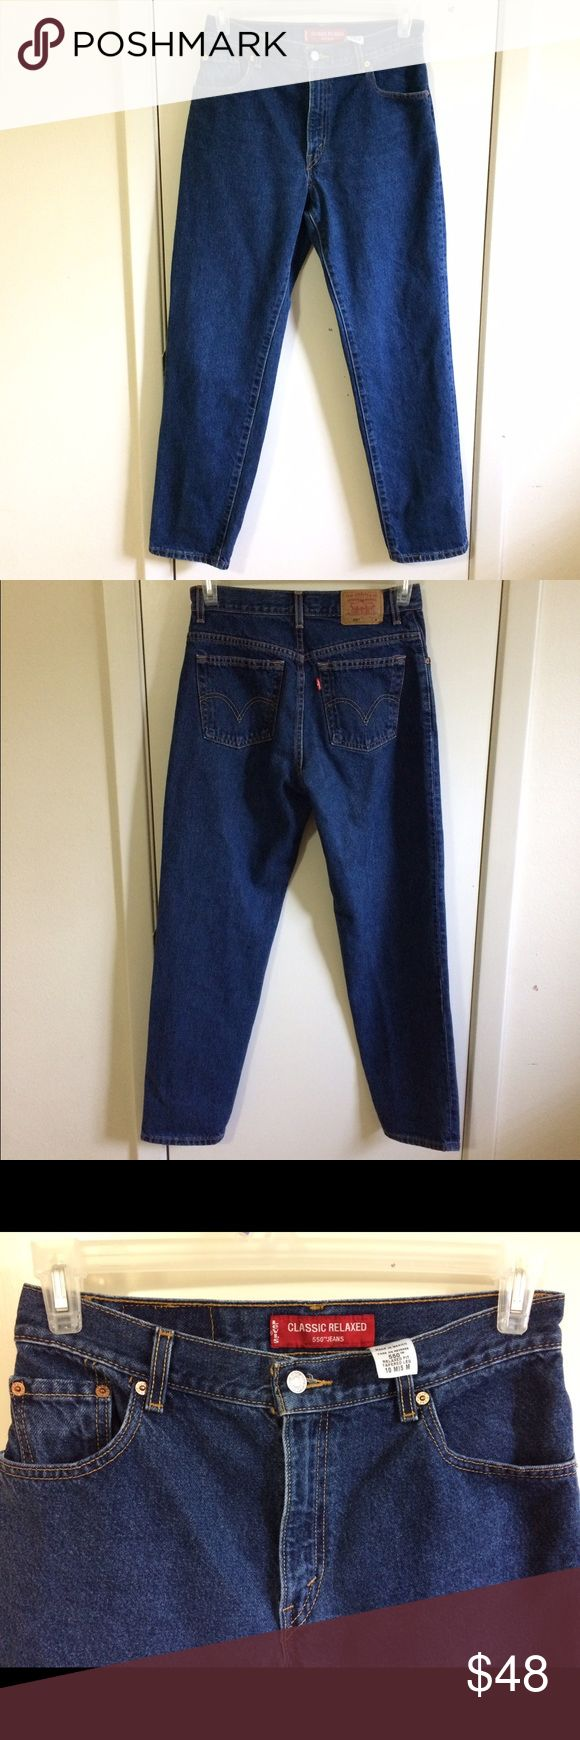 Levis vintage classic relaxed fit 550 jeans Dark wash mom jeans. Like new. Best jeans ever created. 100% cotton. Fits waist 30. Inseam 30. Rise 11. View all pics and ask any questions before purchase all sales are final Levi's Jeans Boyfriend